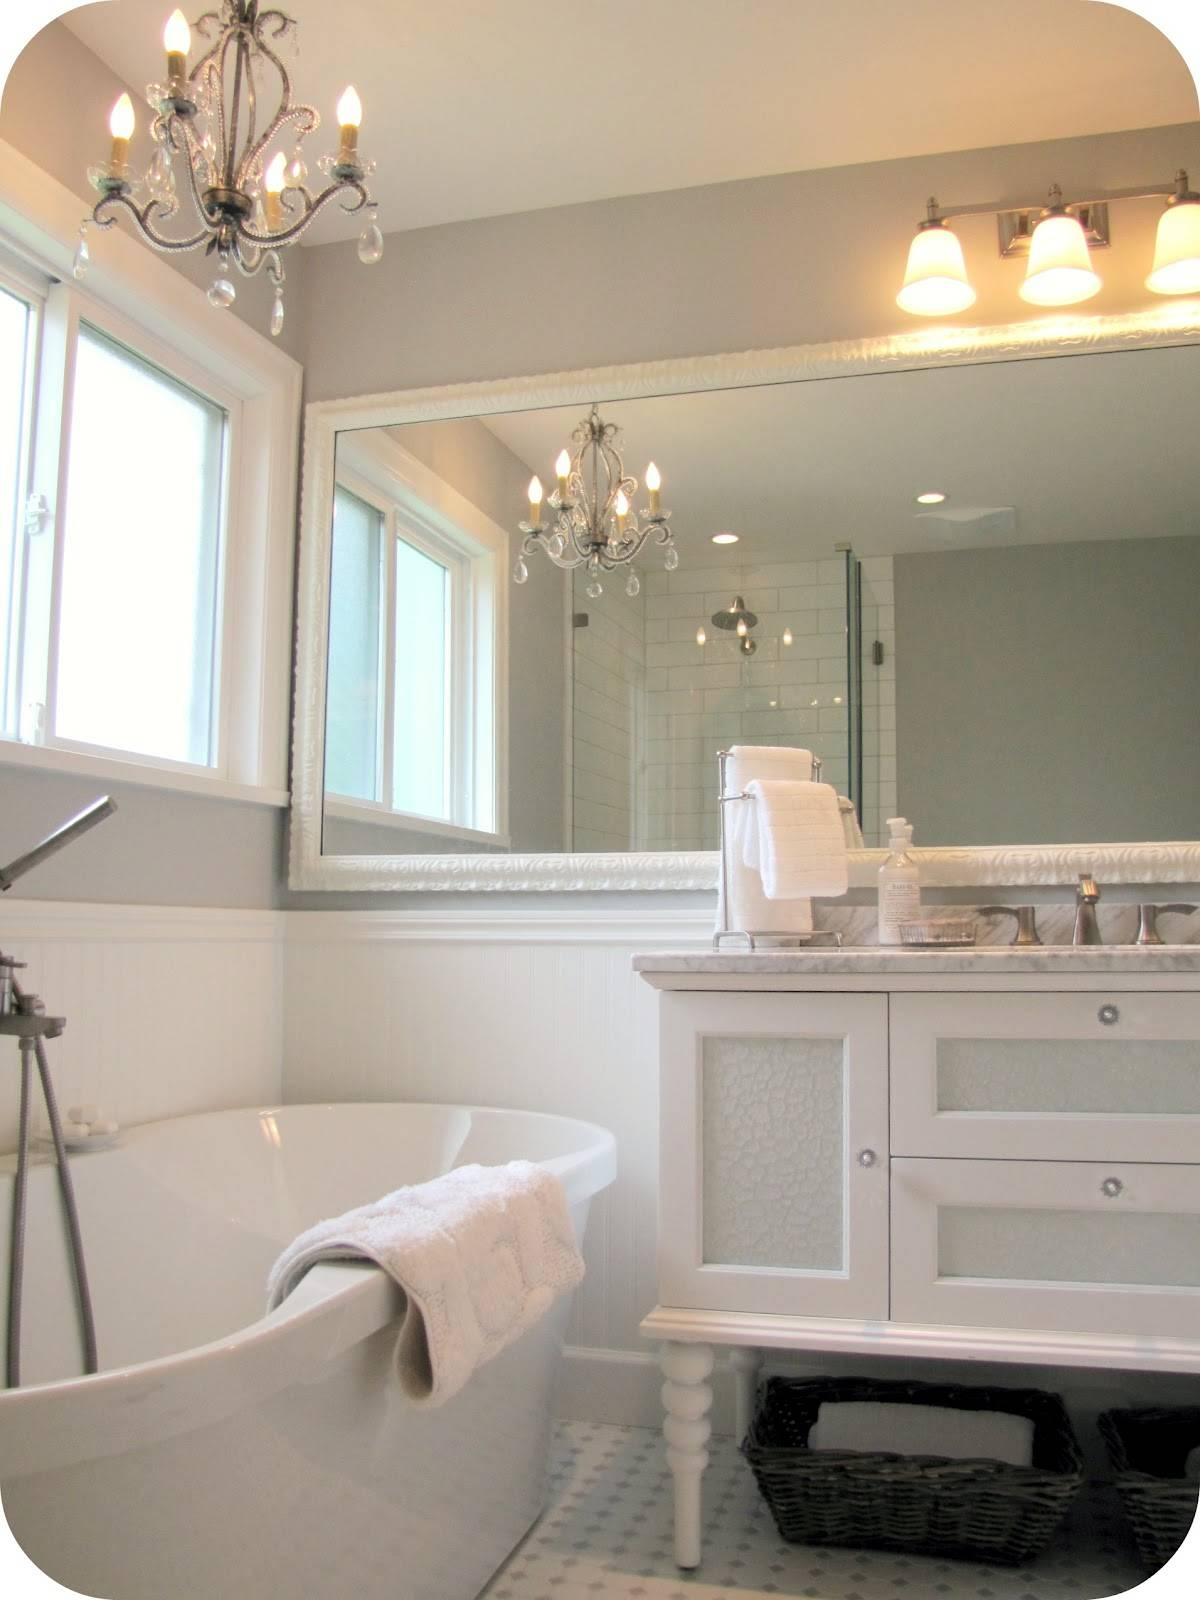 Big Mirrors For Bathrooms - Home Design Ideas And Pictures regarding Big White Mirrors (Image 9 of 25)